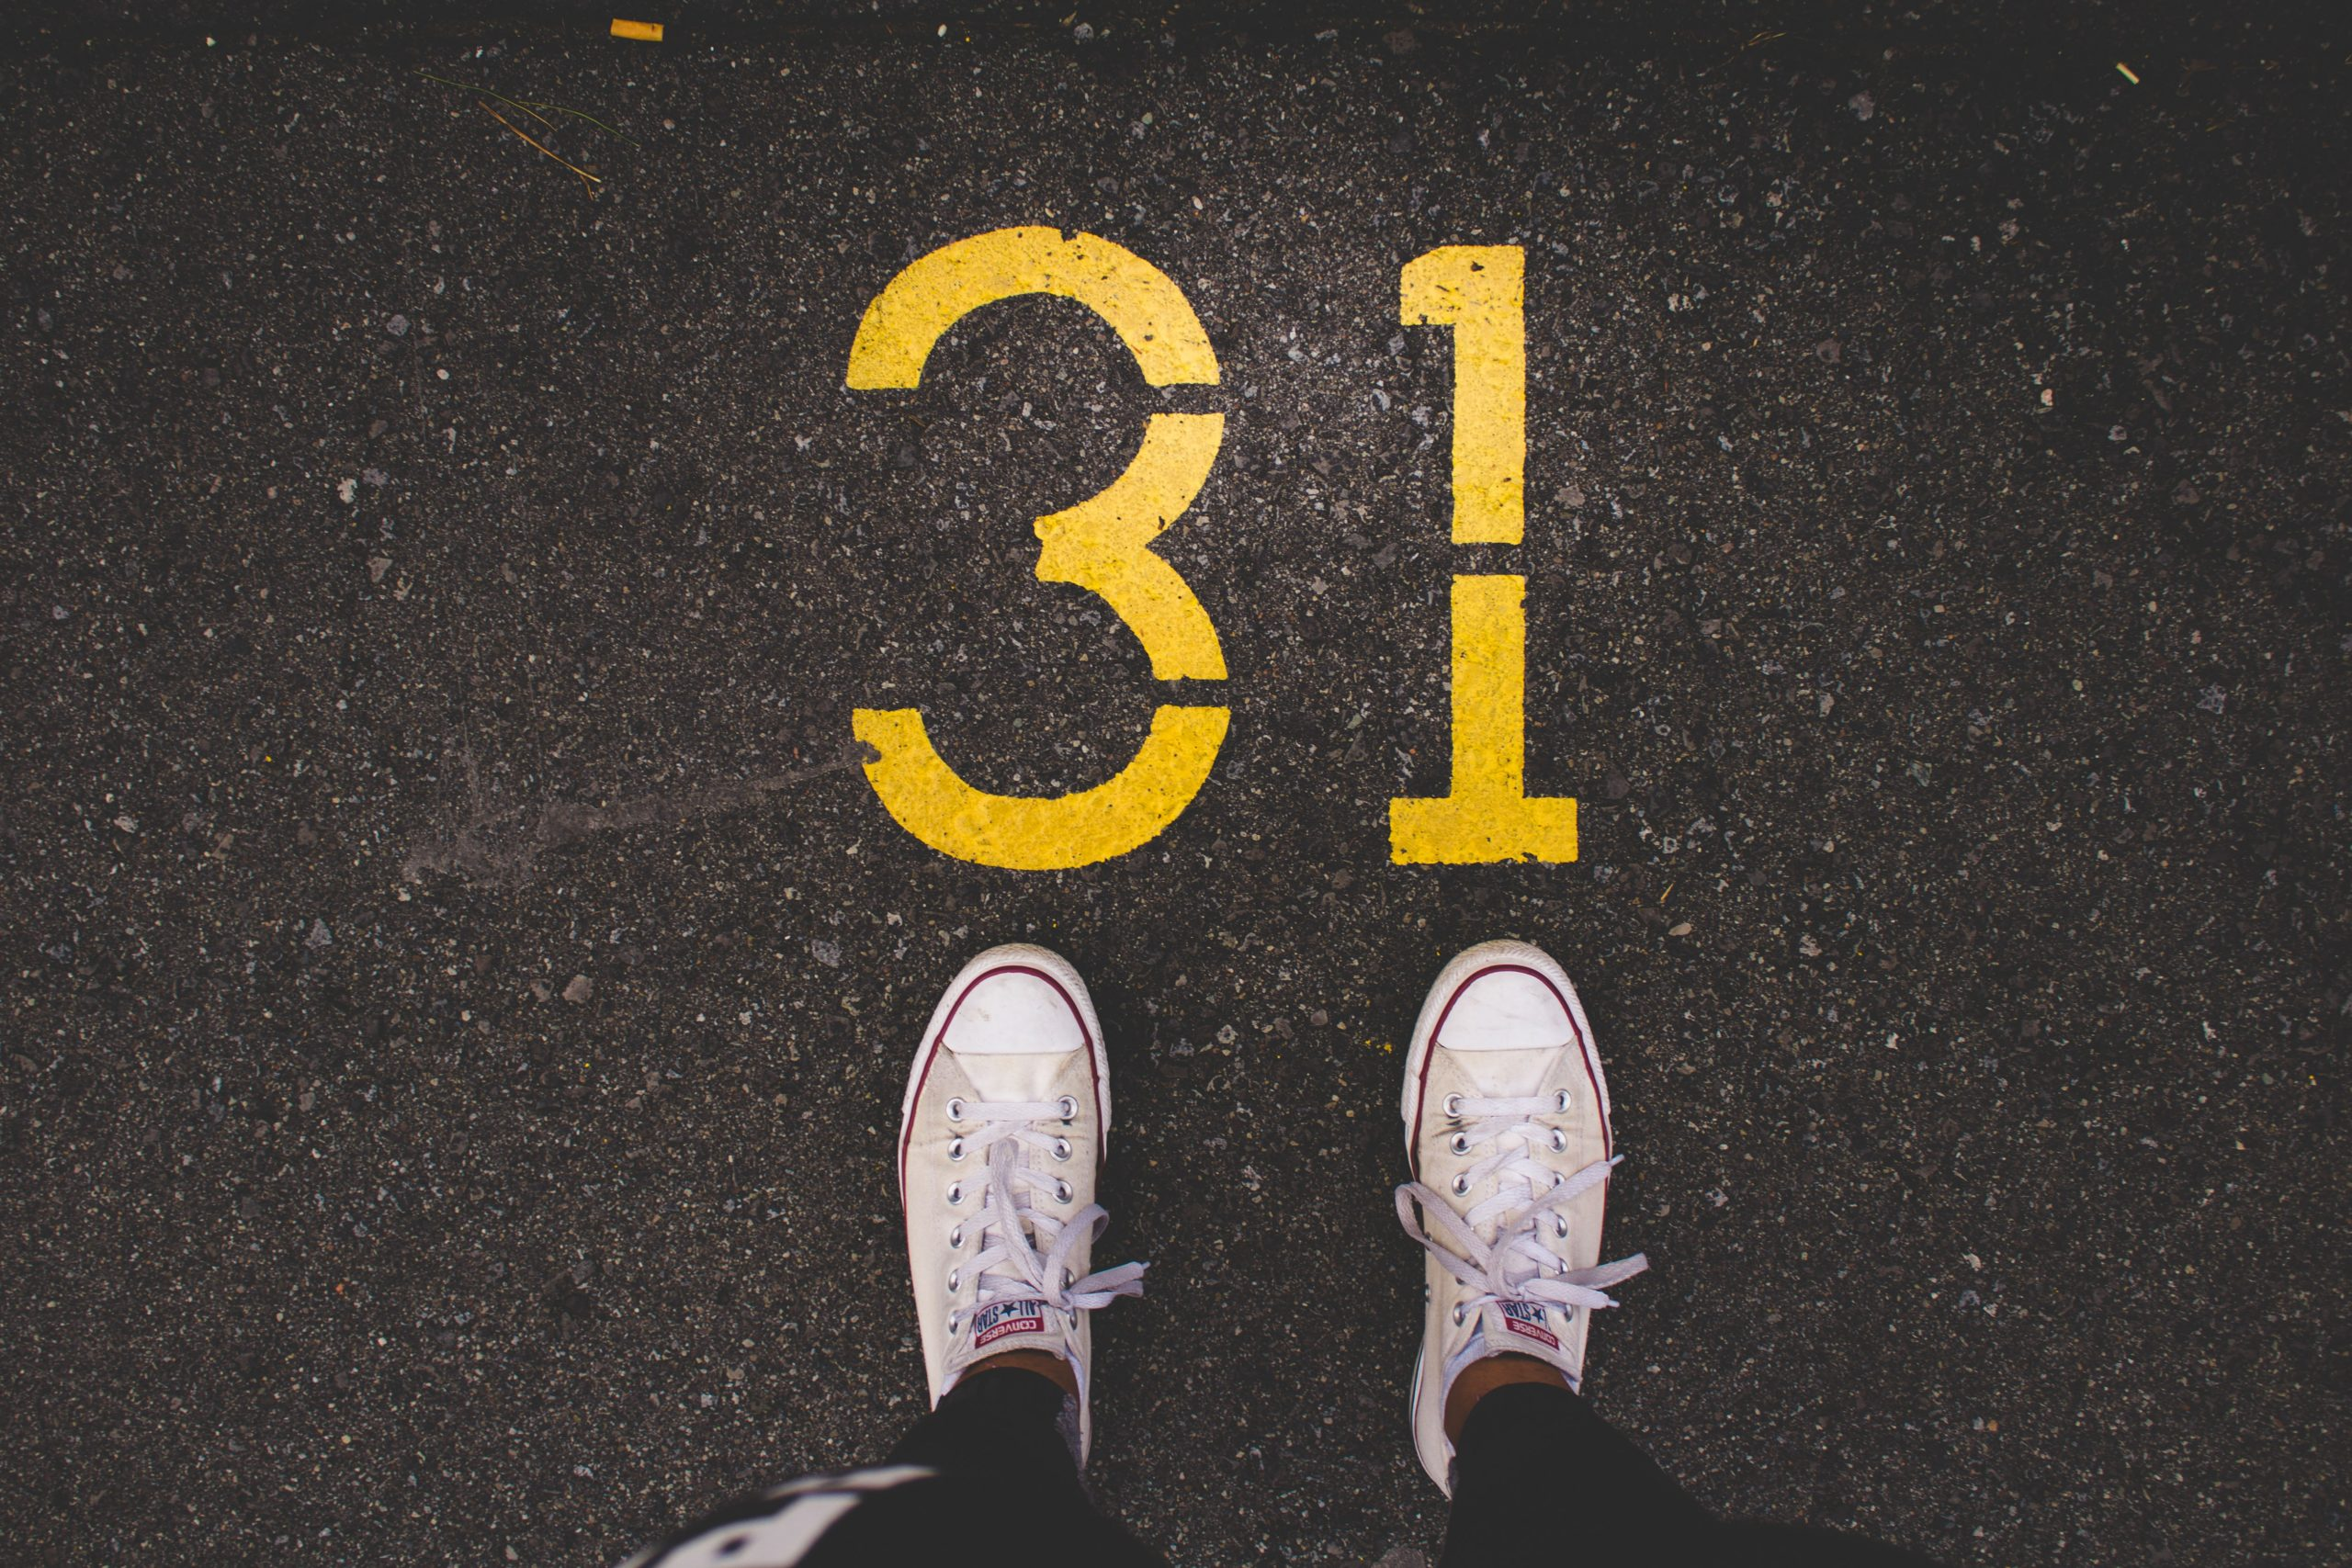 Pair of trainers in front of the number 31 painted on the road